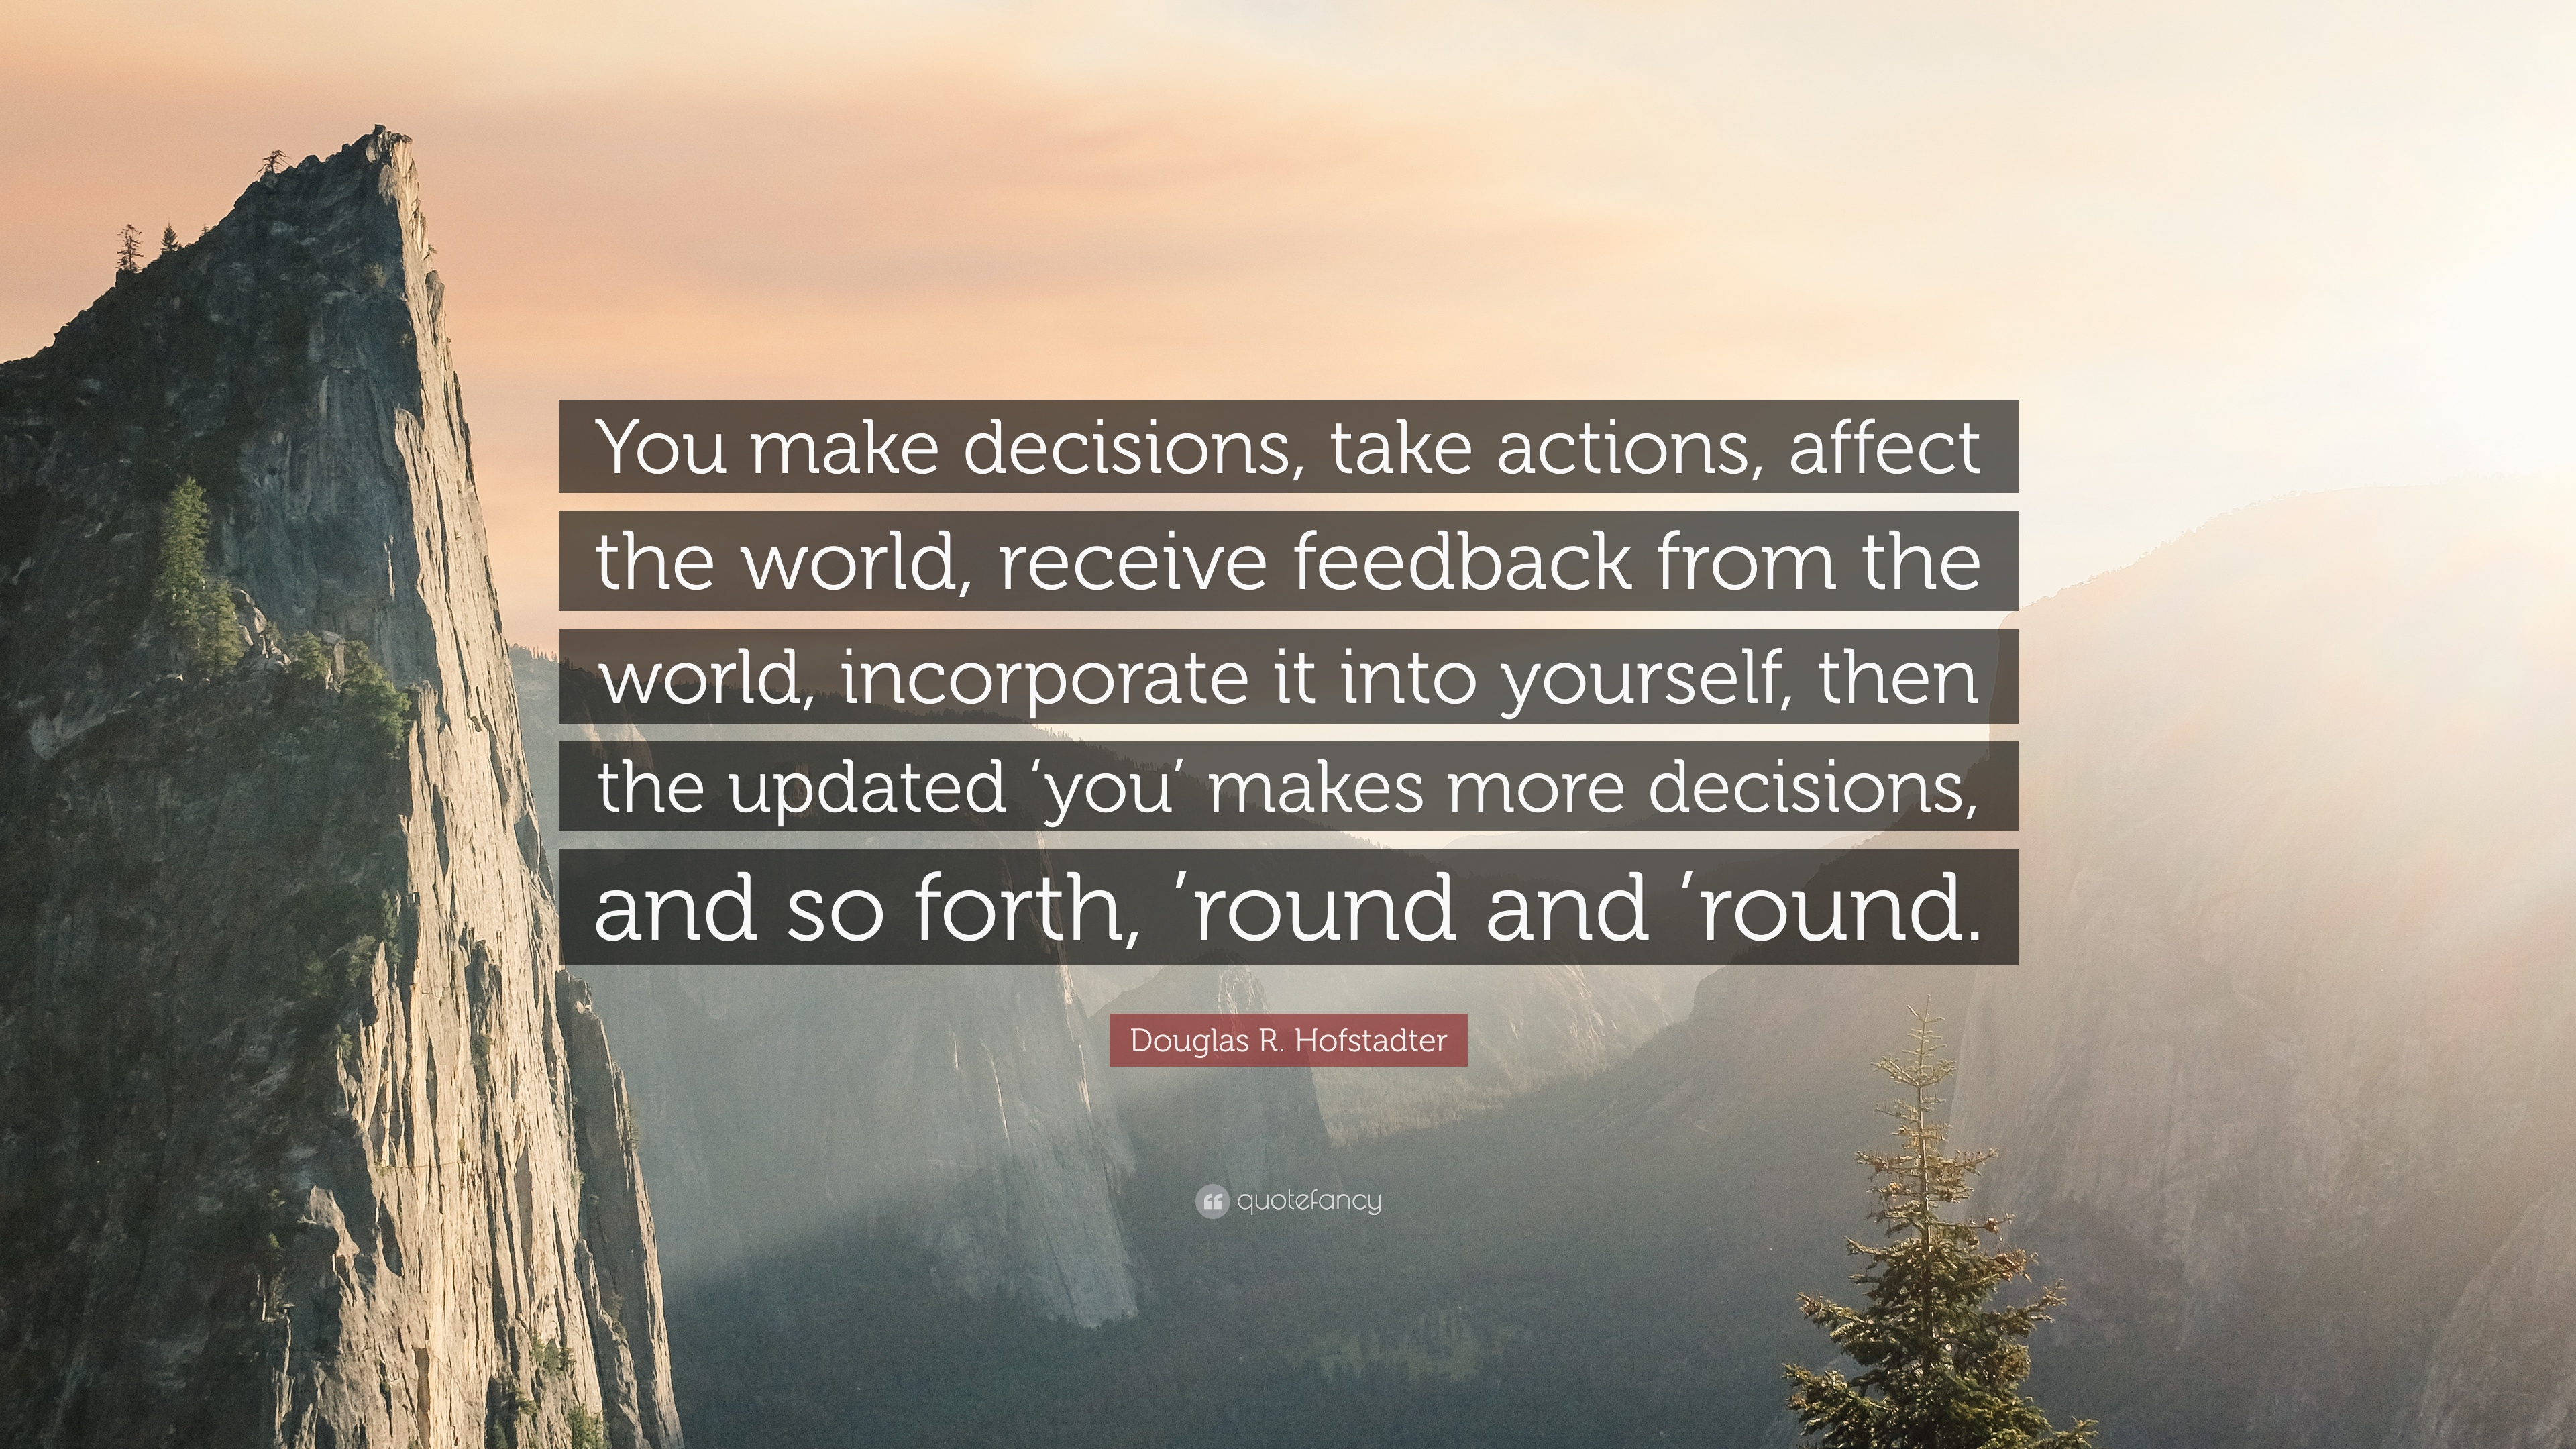 Douglas R Hofstadter Quote You Make Decisions Take Actions